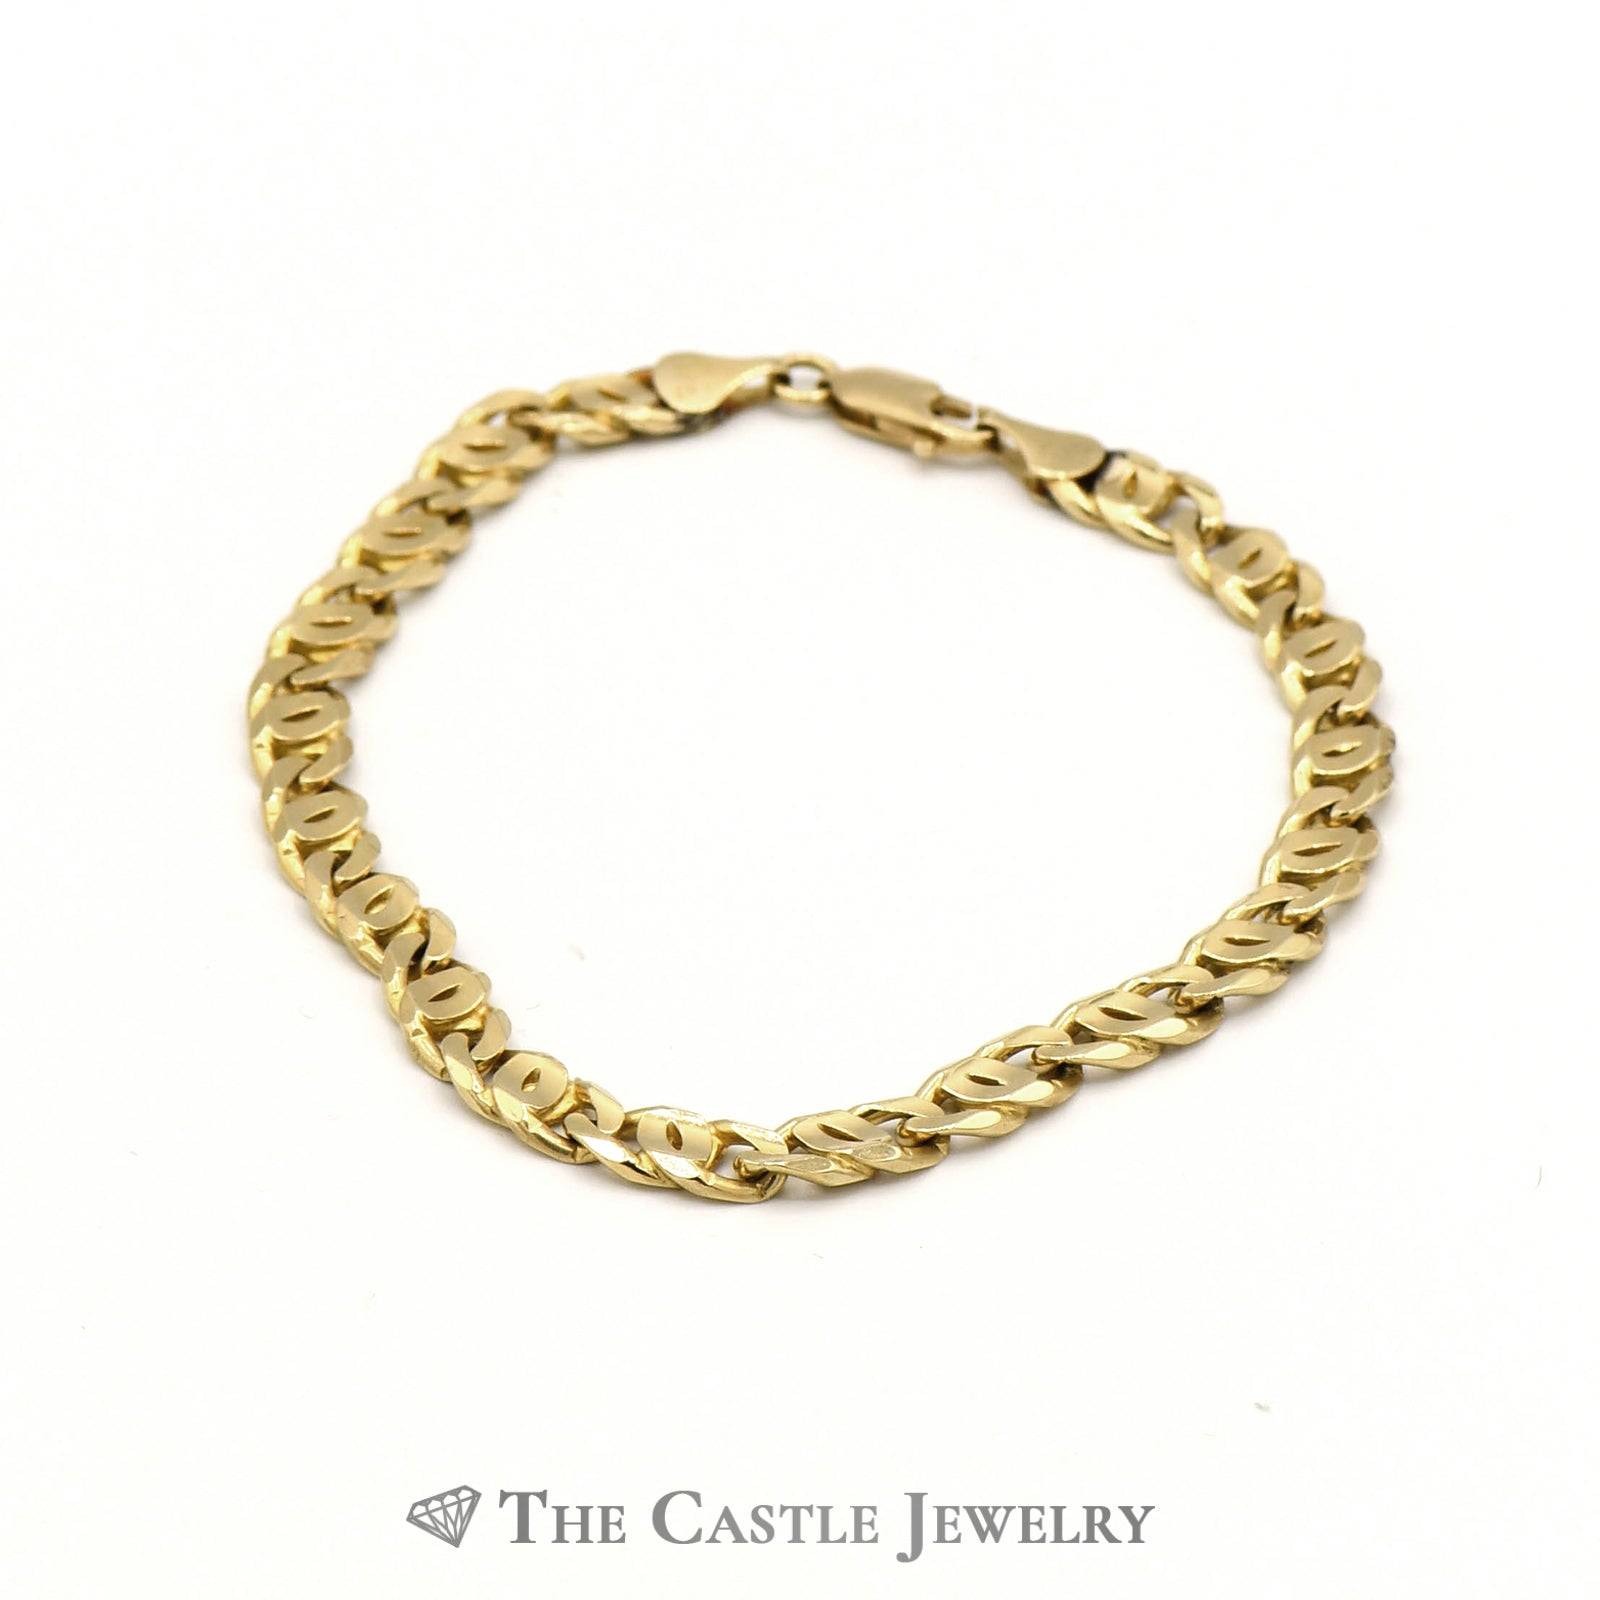 14k Yellow Gold 9 1/2 inch Oval Link Bracelet